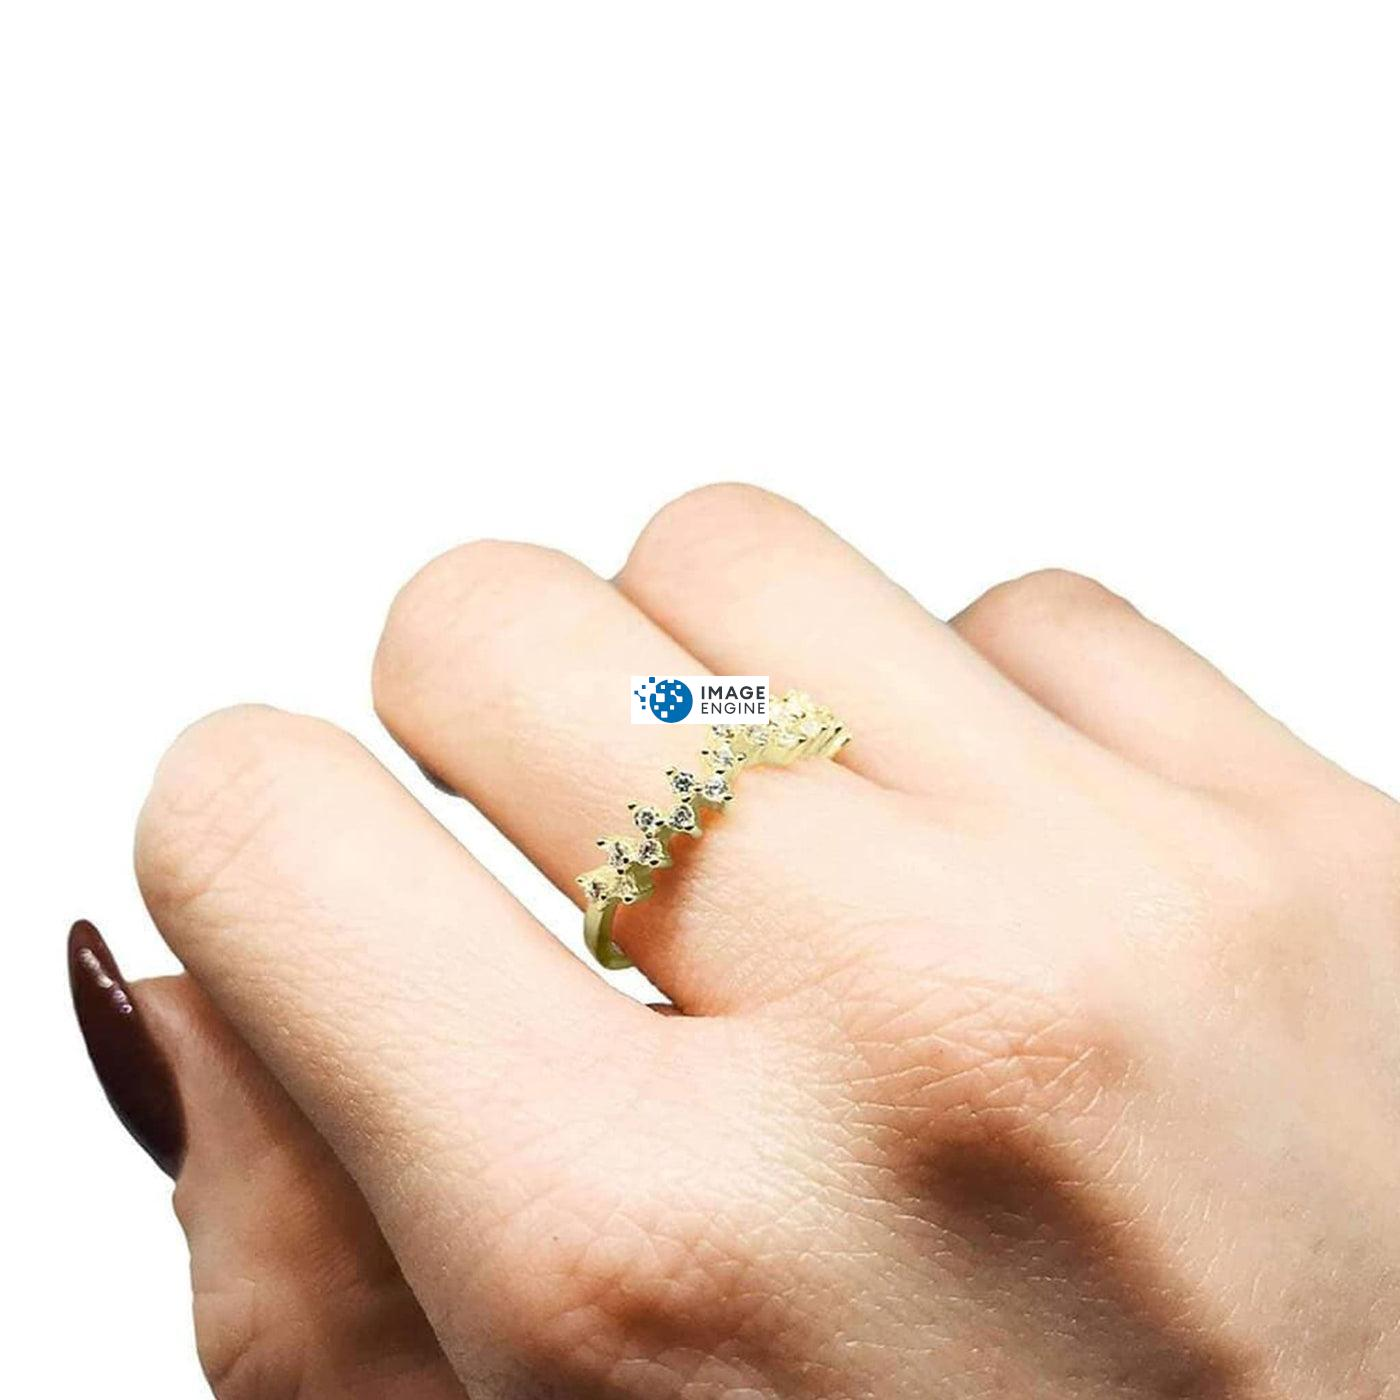 Esther Petite Cluster Ring - Wearing on Middle Finger on Higher Angle View - 18K Yellow Gold Vermeil